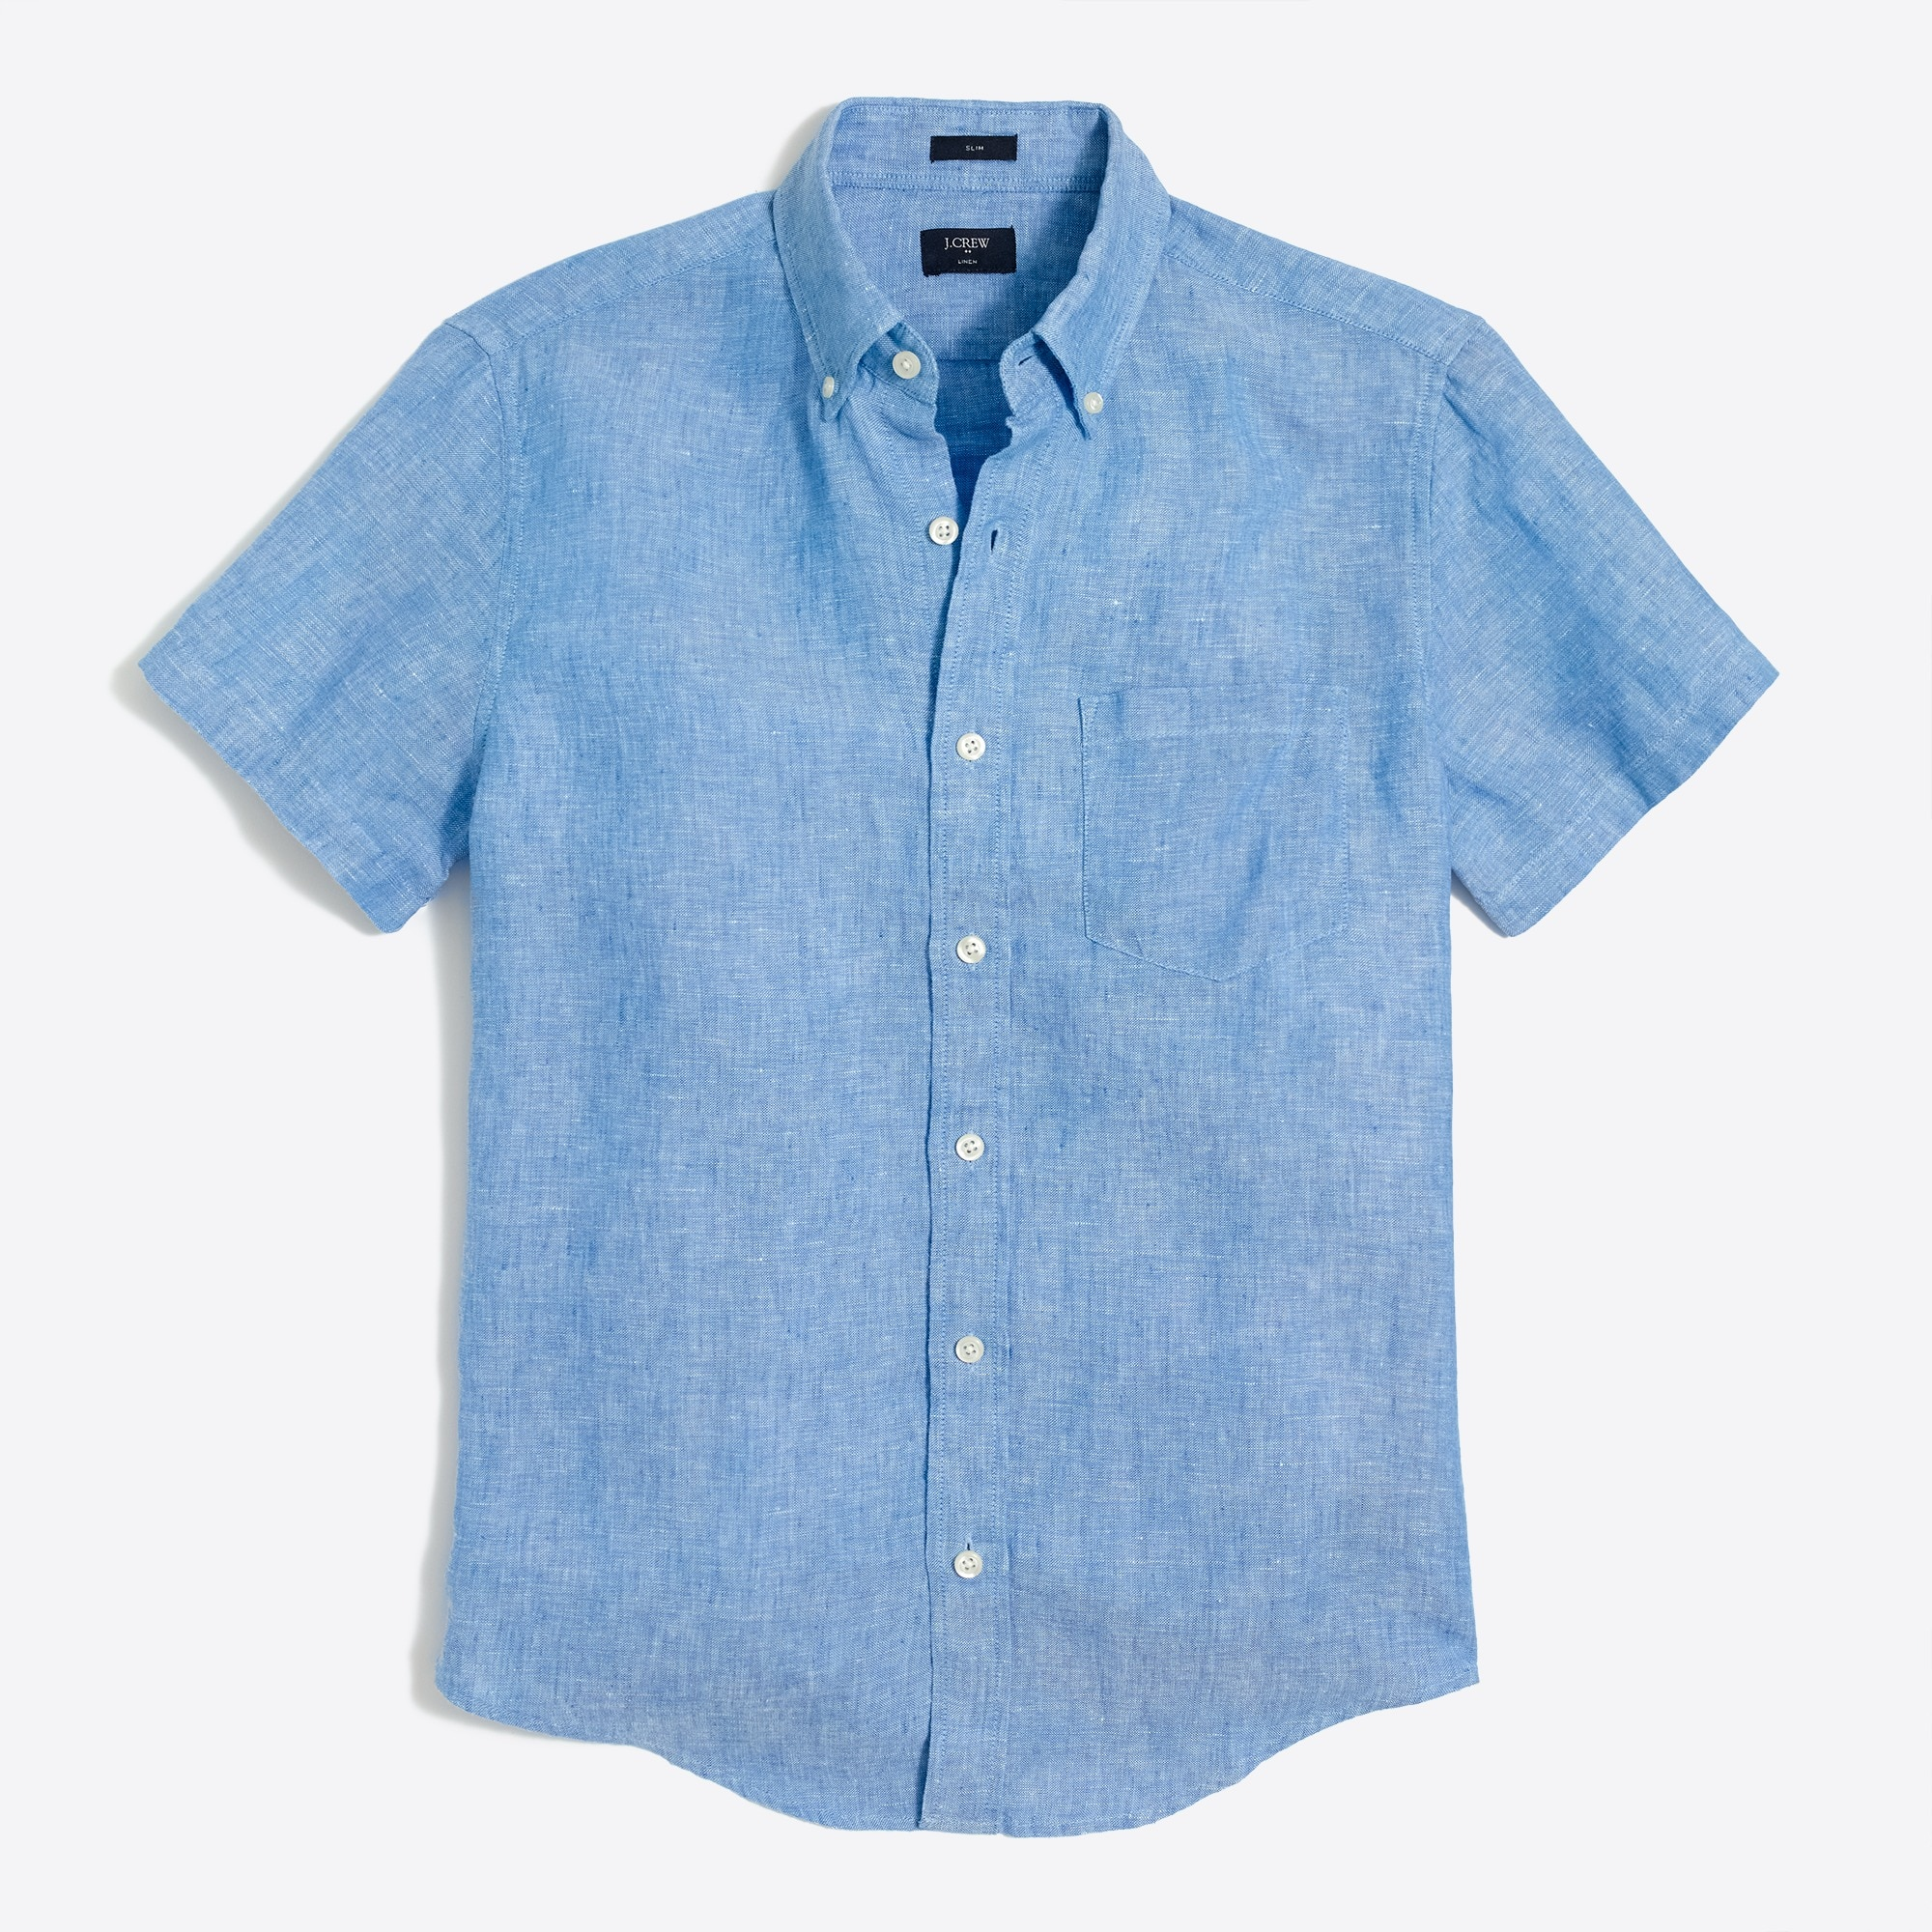 Image 2 for Slim short-sleeve linen shirt